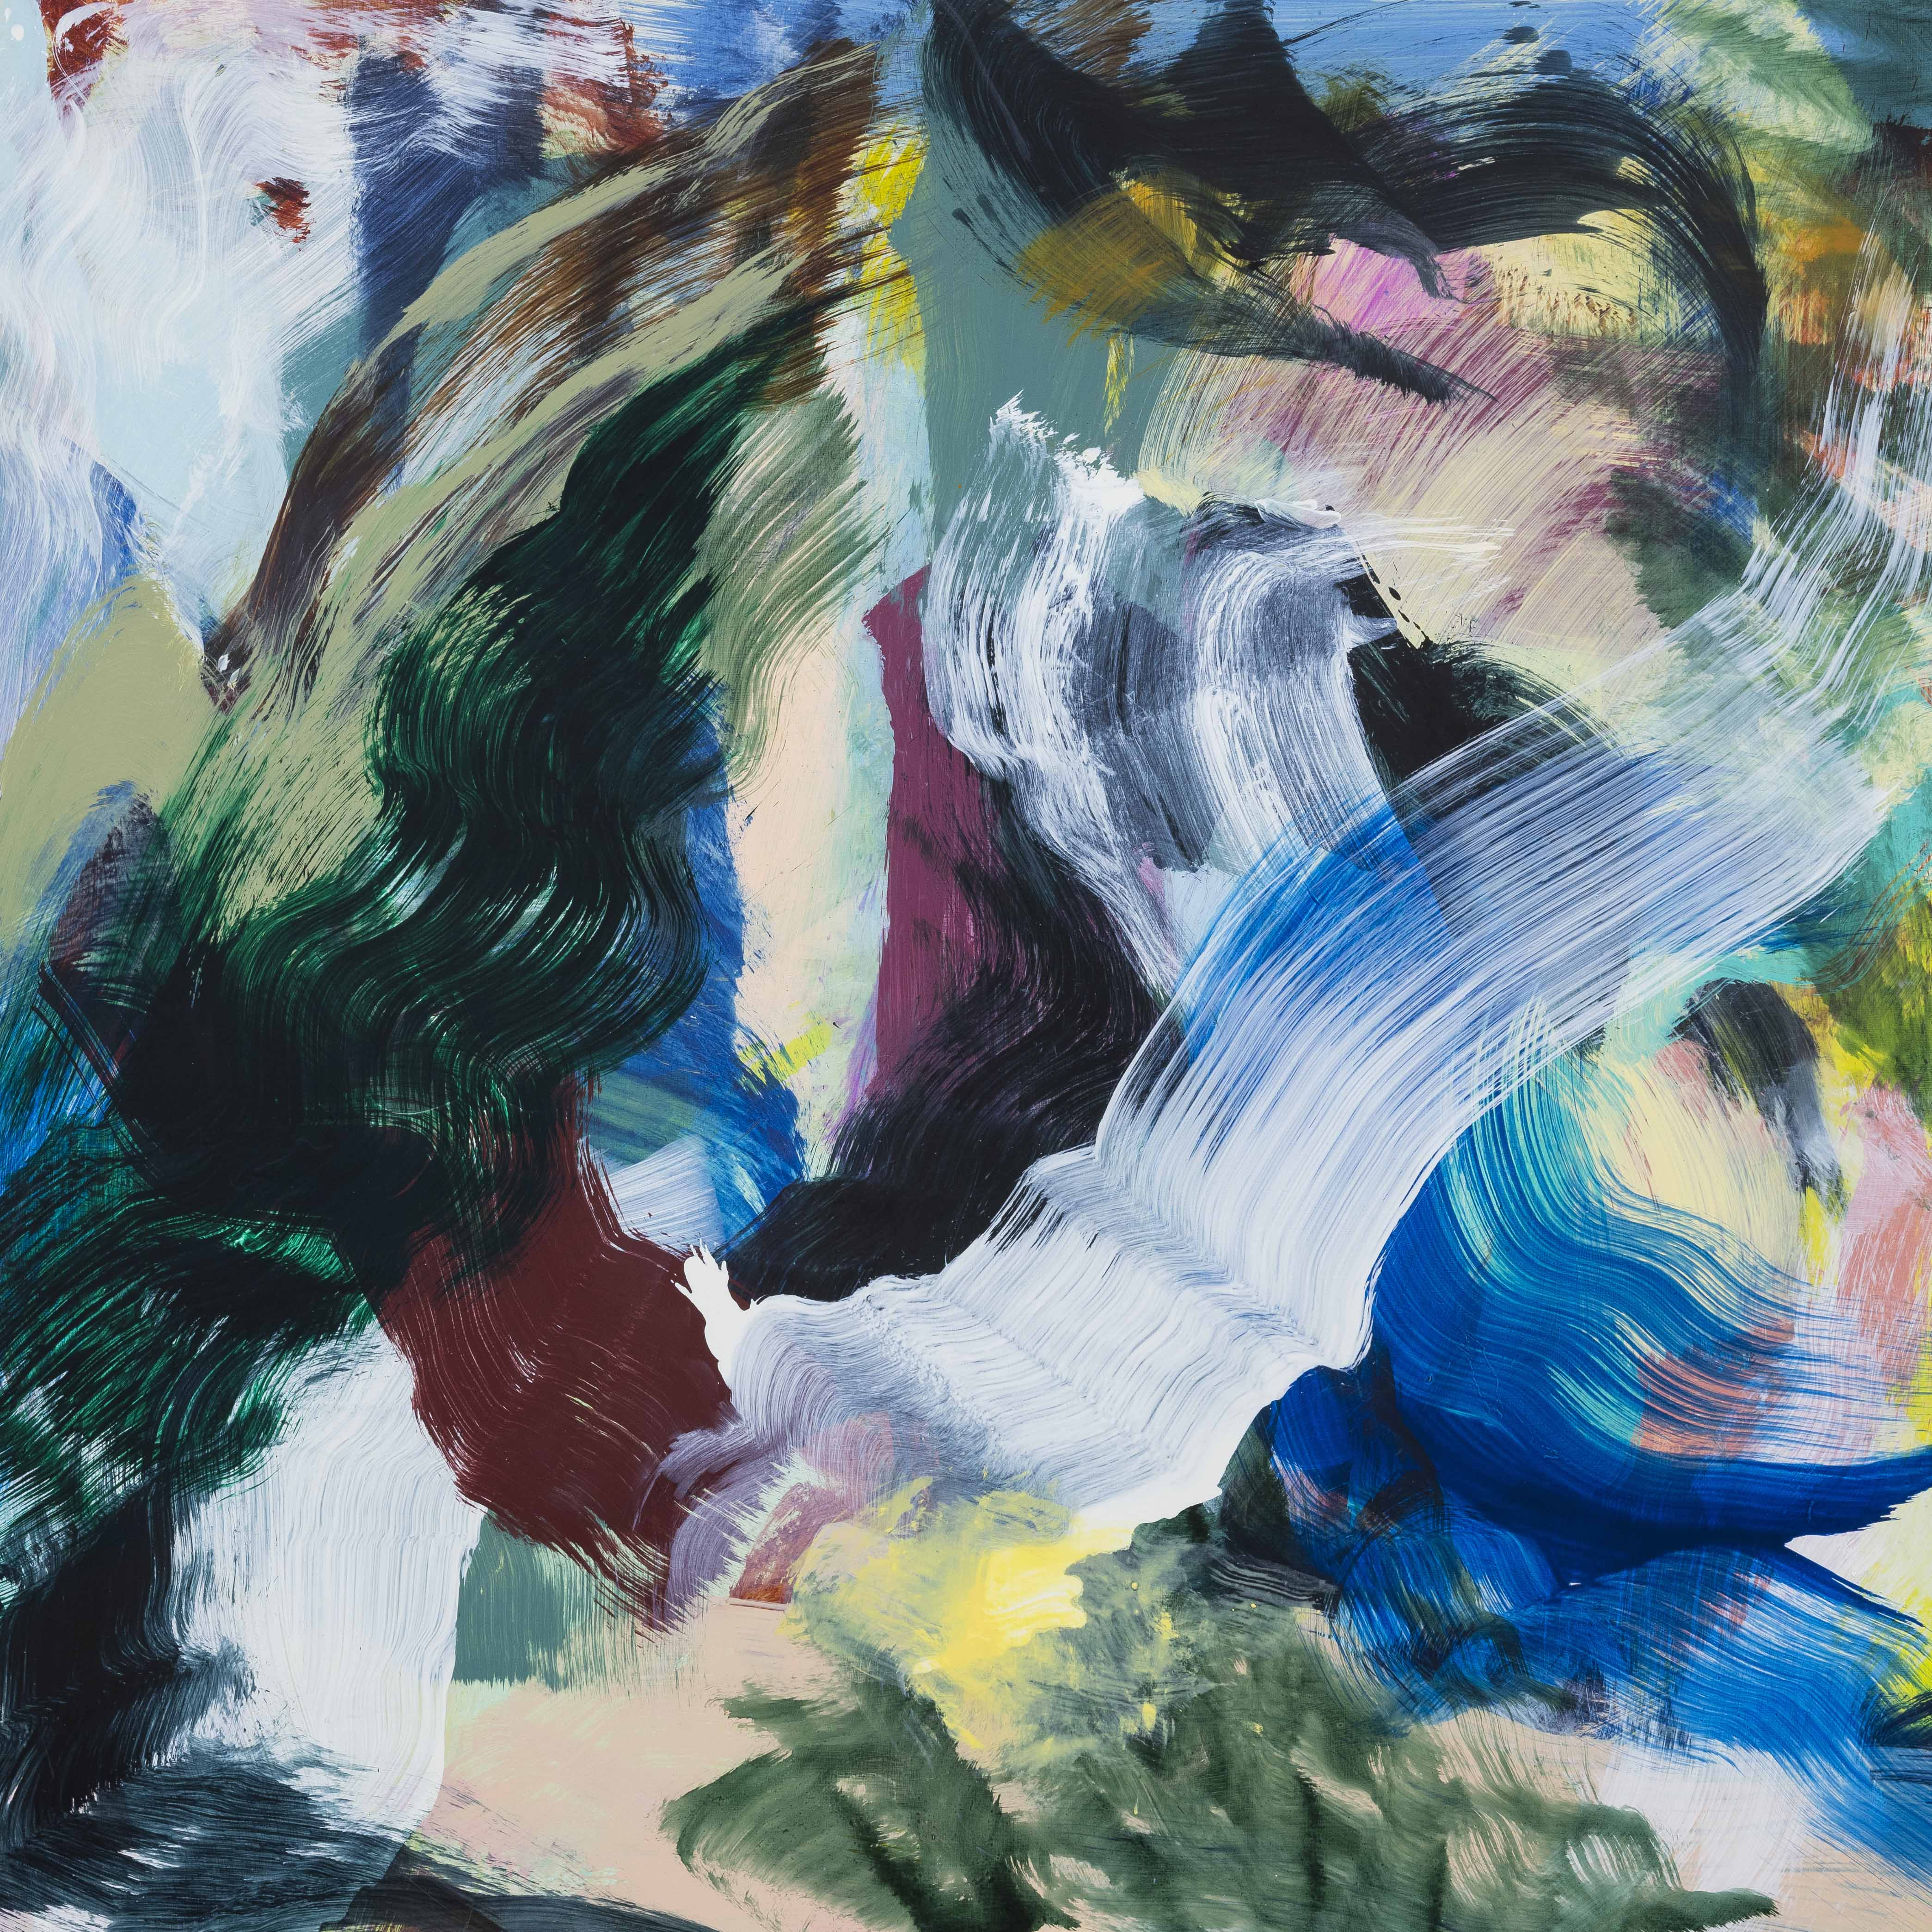 Rest in Peace Howard Hodgkin, and Long Live the Easel